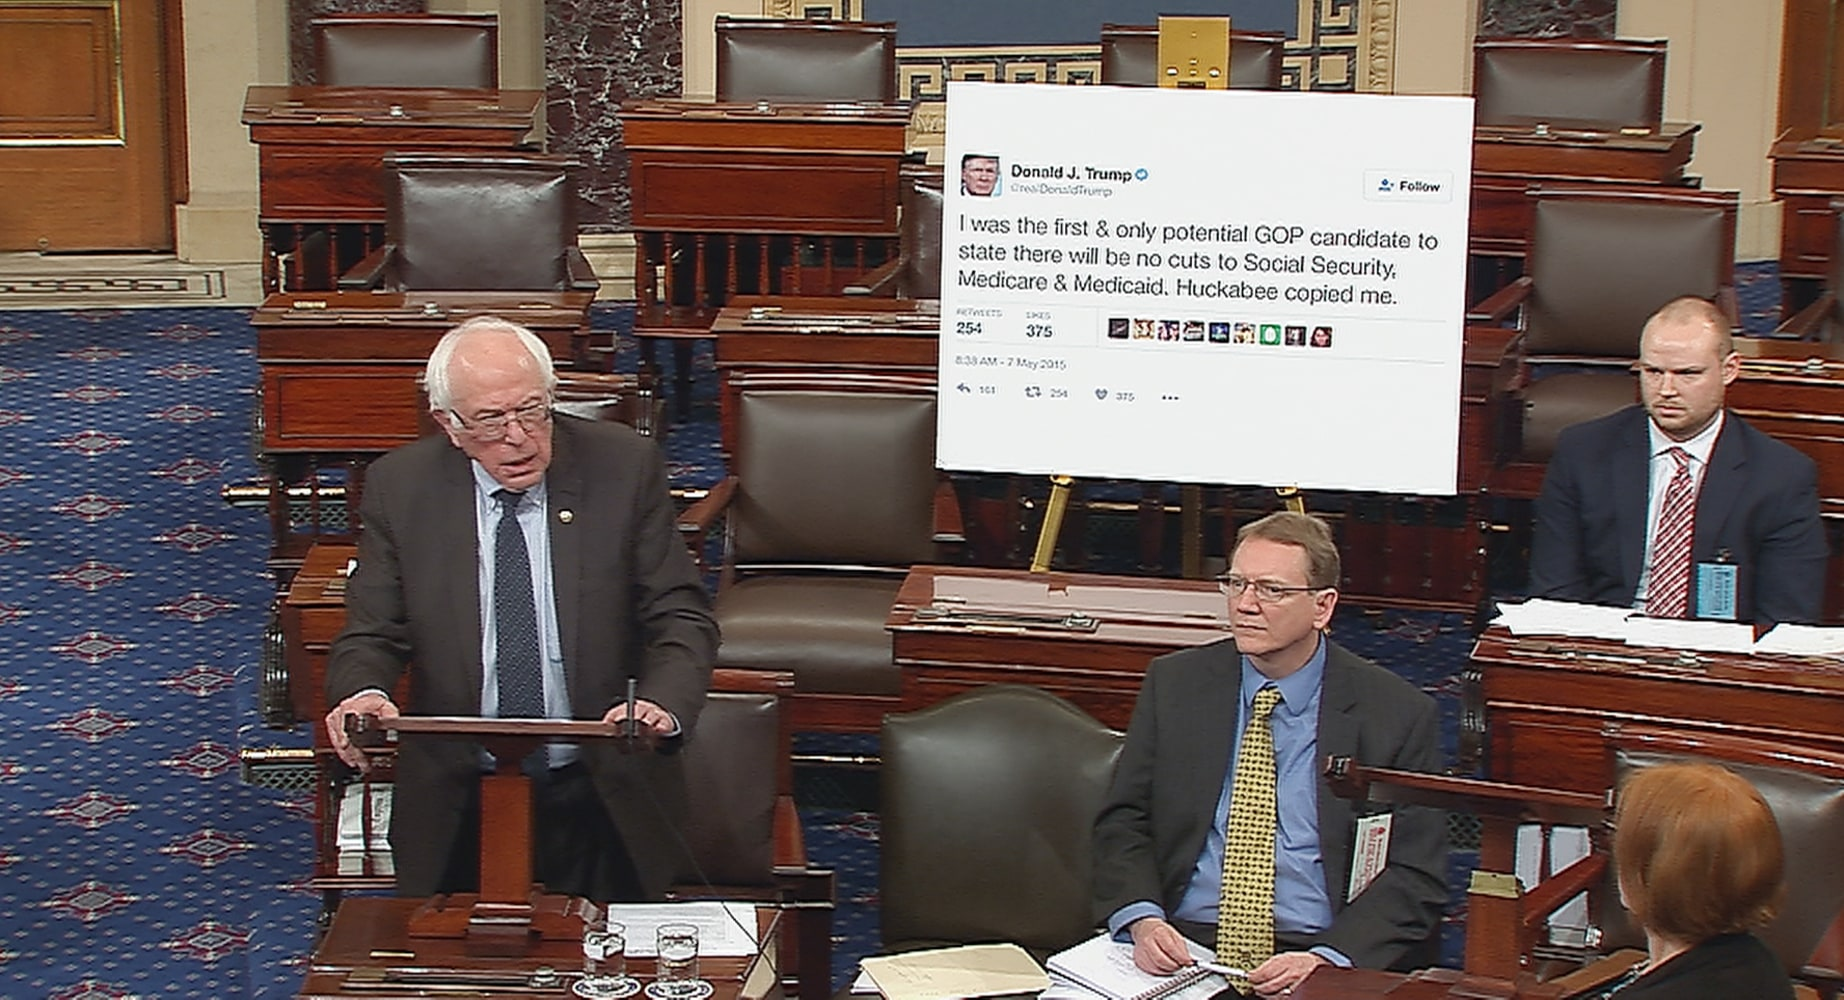 ... the Senate floor while displaying a poster of a tweet by Donald Trump